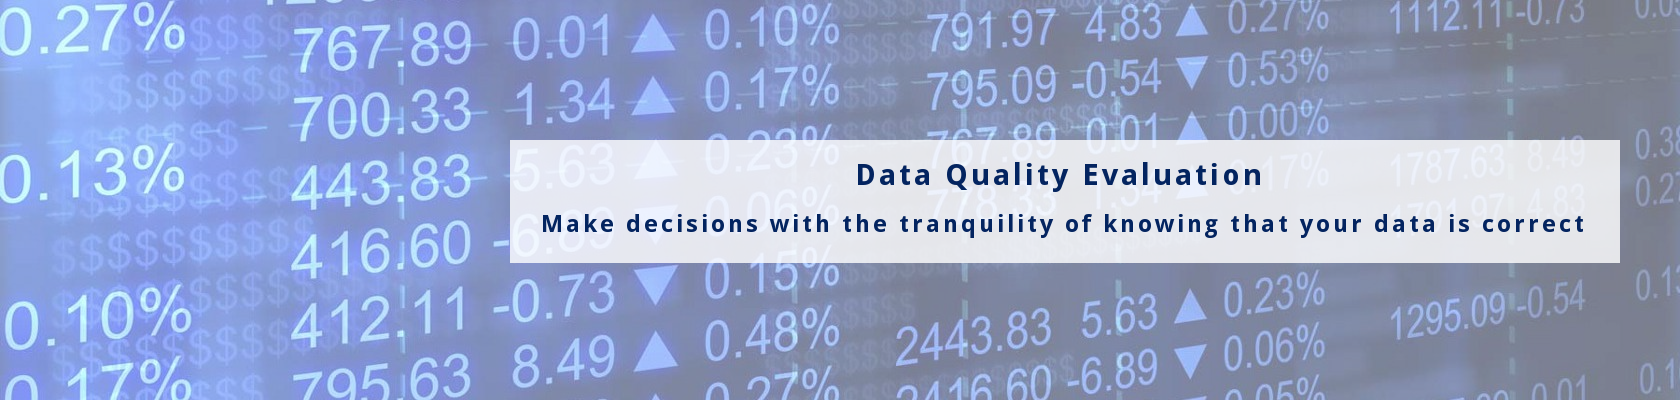 Data Quality - ISO/IEC 25000